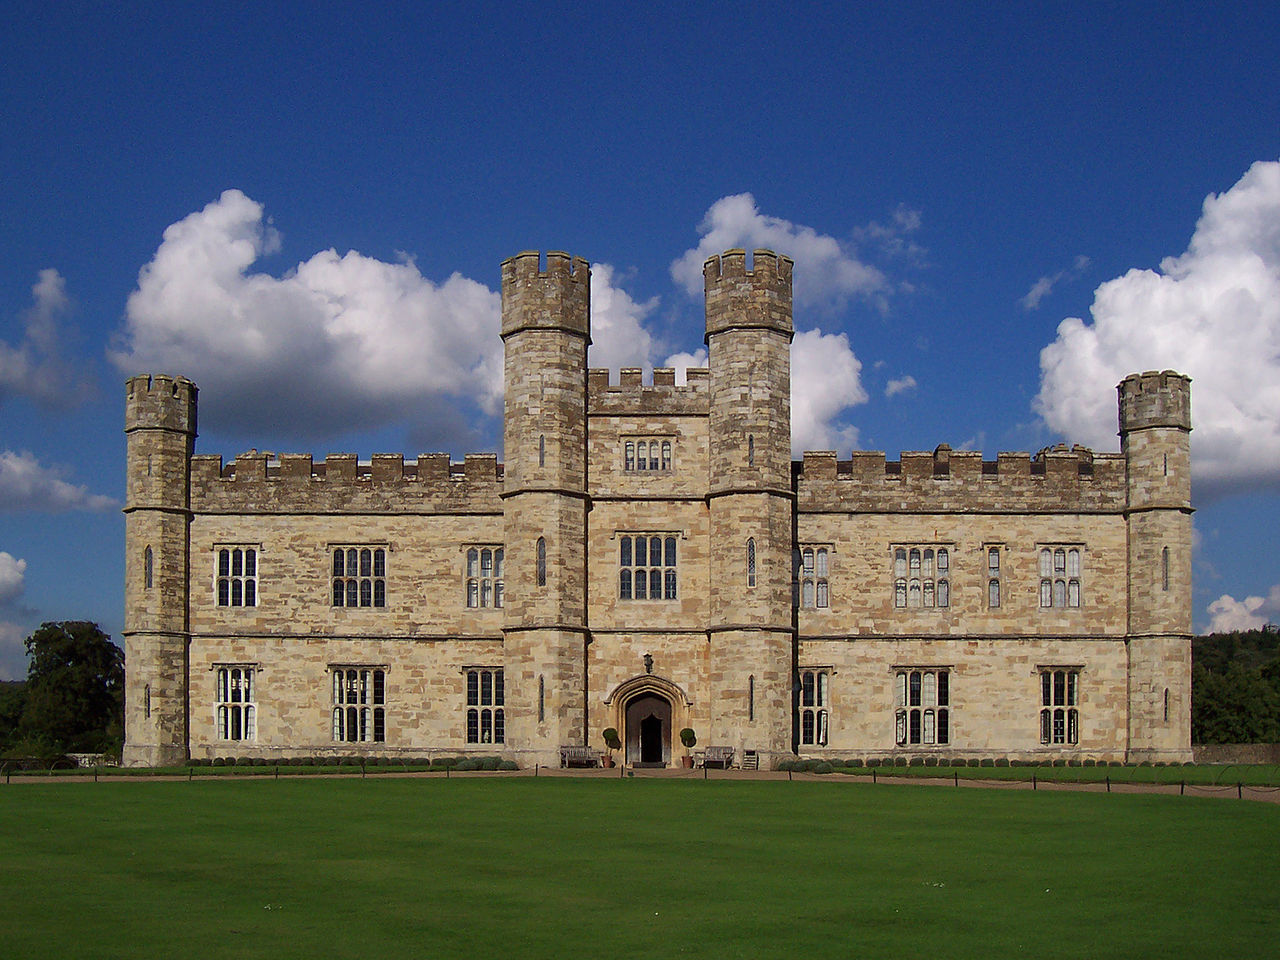 Leeds Castle on a clear day